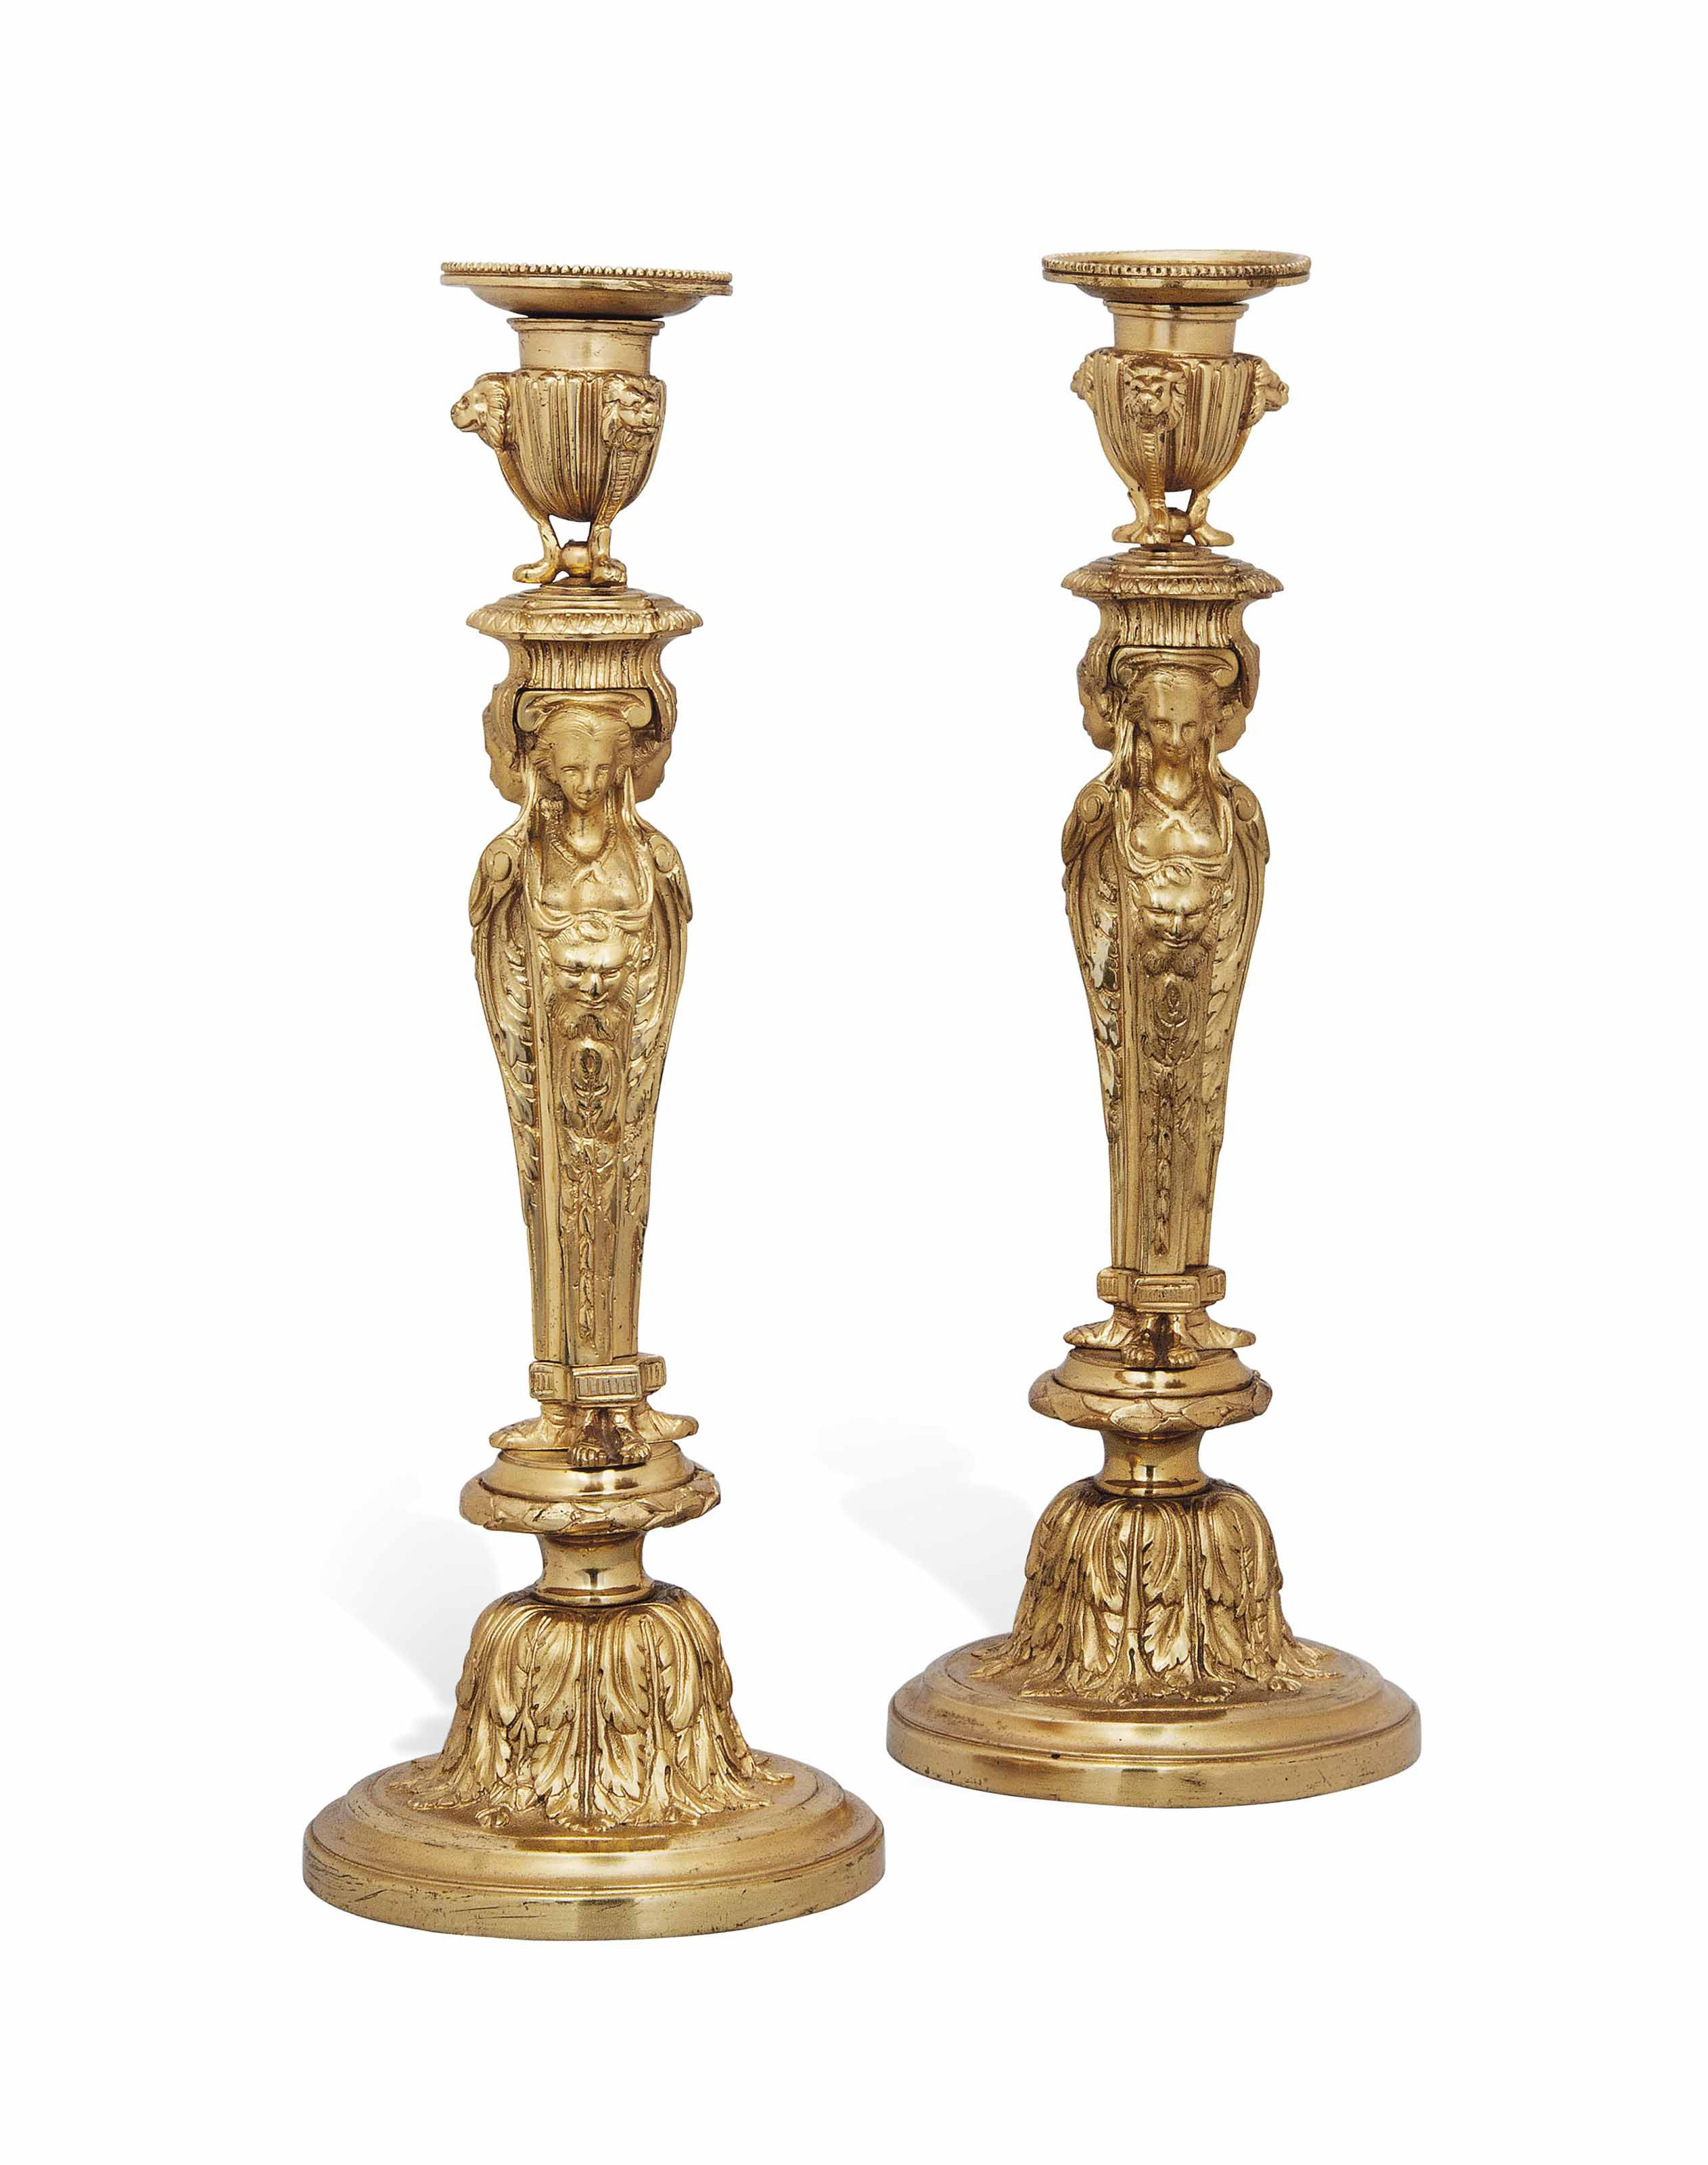 A PAIR OF FRENCH GILT-BRONZE CANDLESTICKS